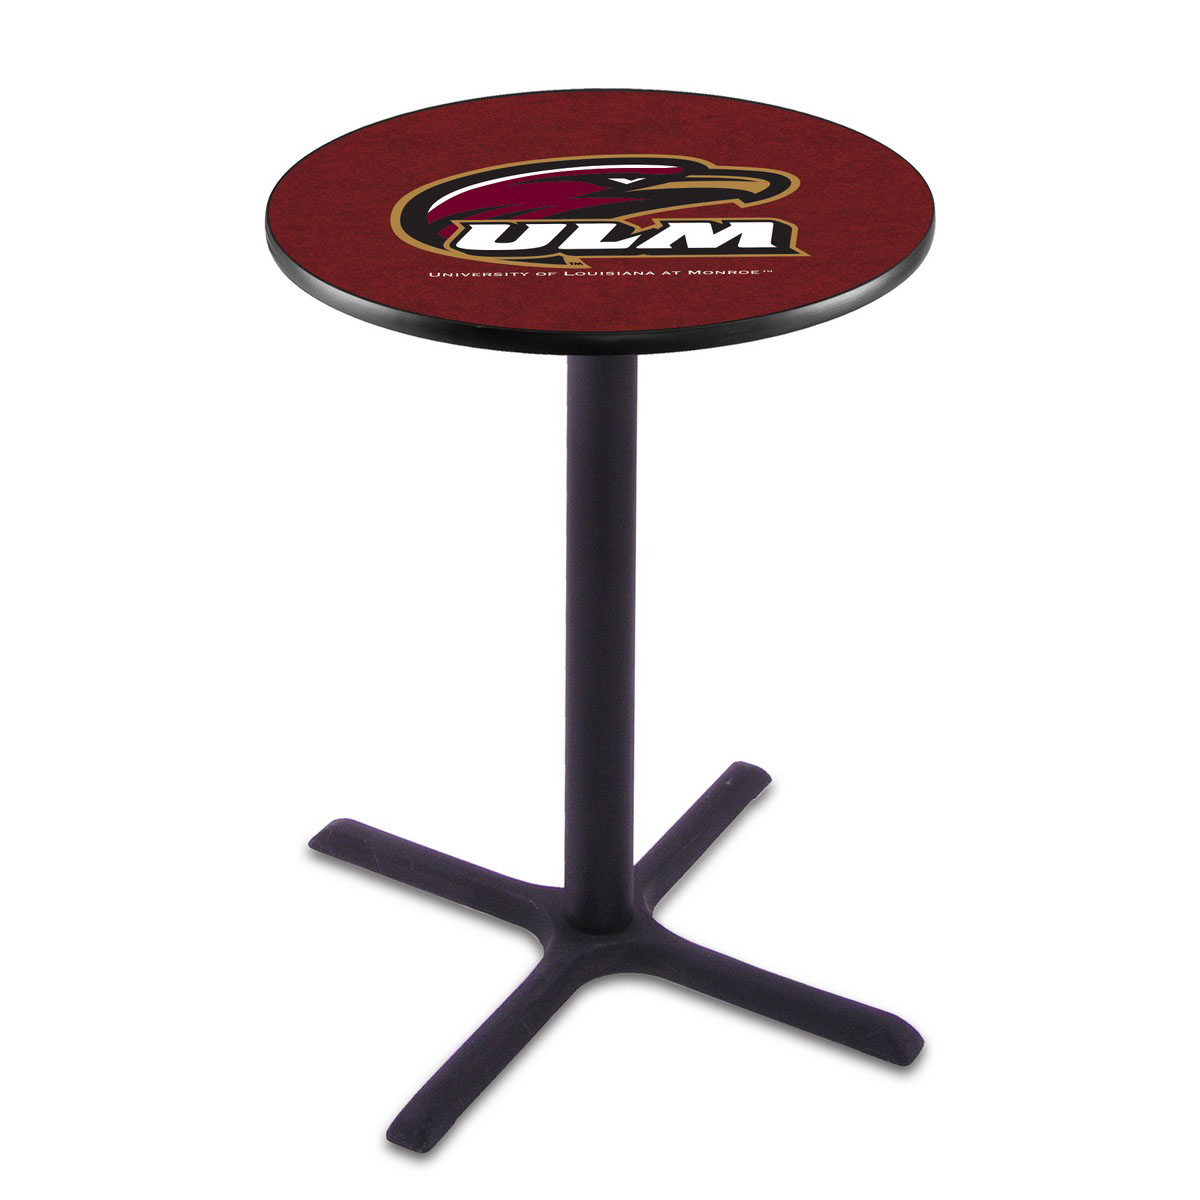 Exquisite Louisiana Monroe Wrinkle Pub Table Product Photo